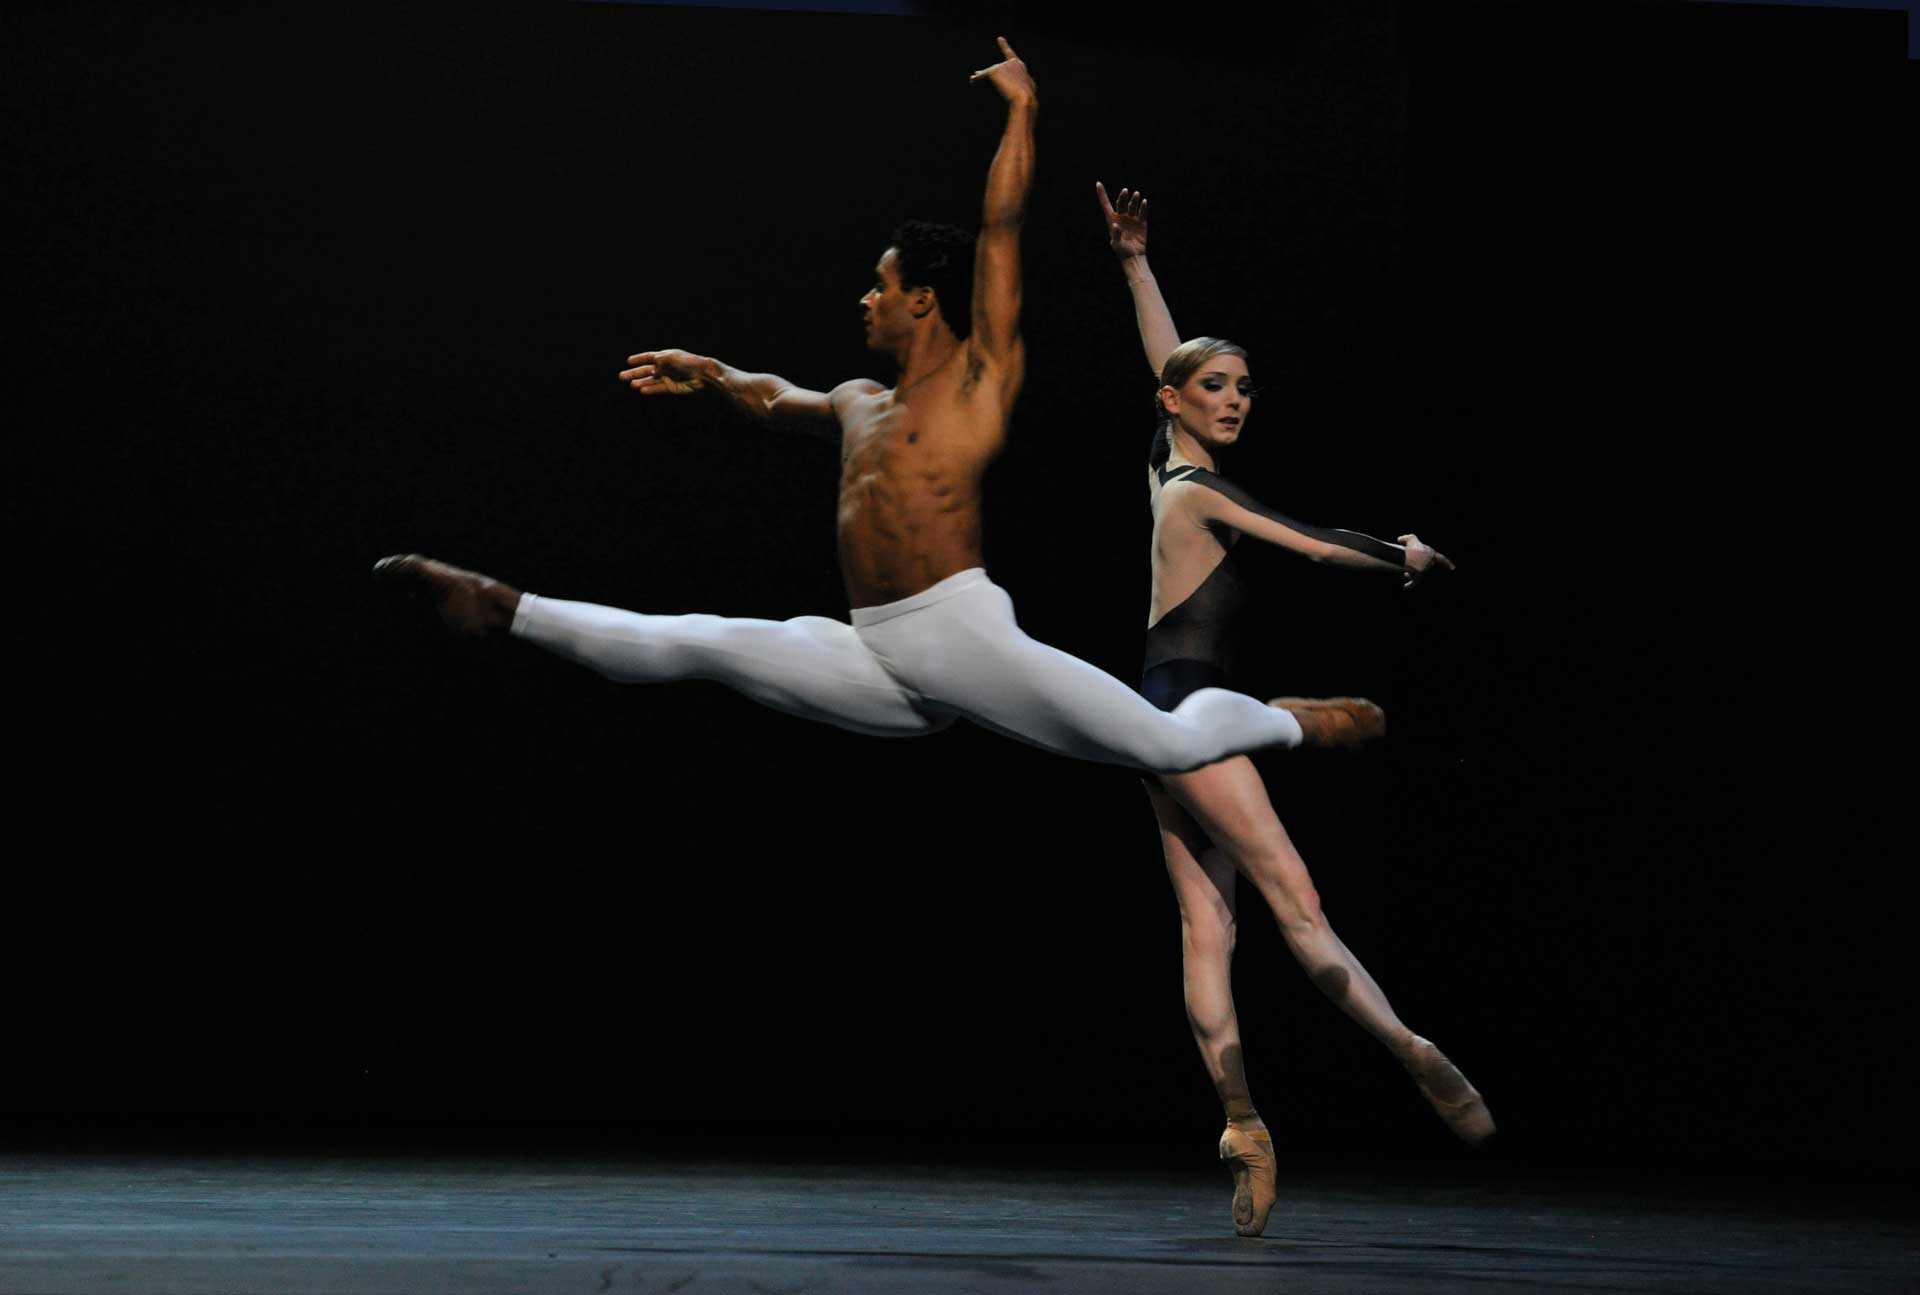 Sarah Lamb and Marcelino Sambe in the Royal Ballet's production of David Dawson's The Human Seasons at the Royal Opera House